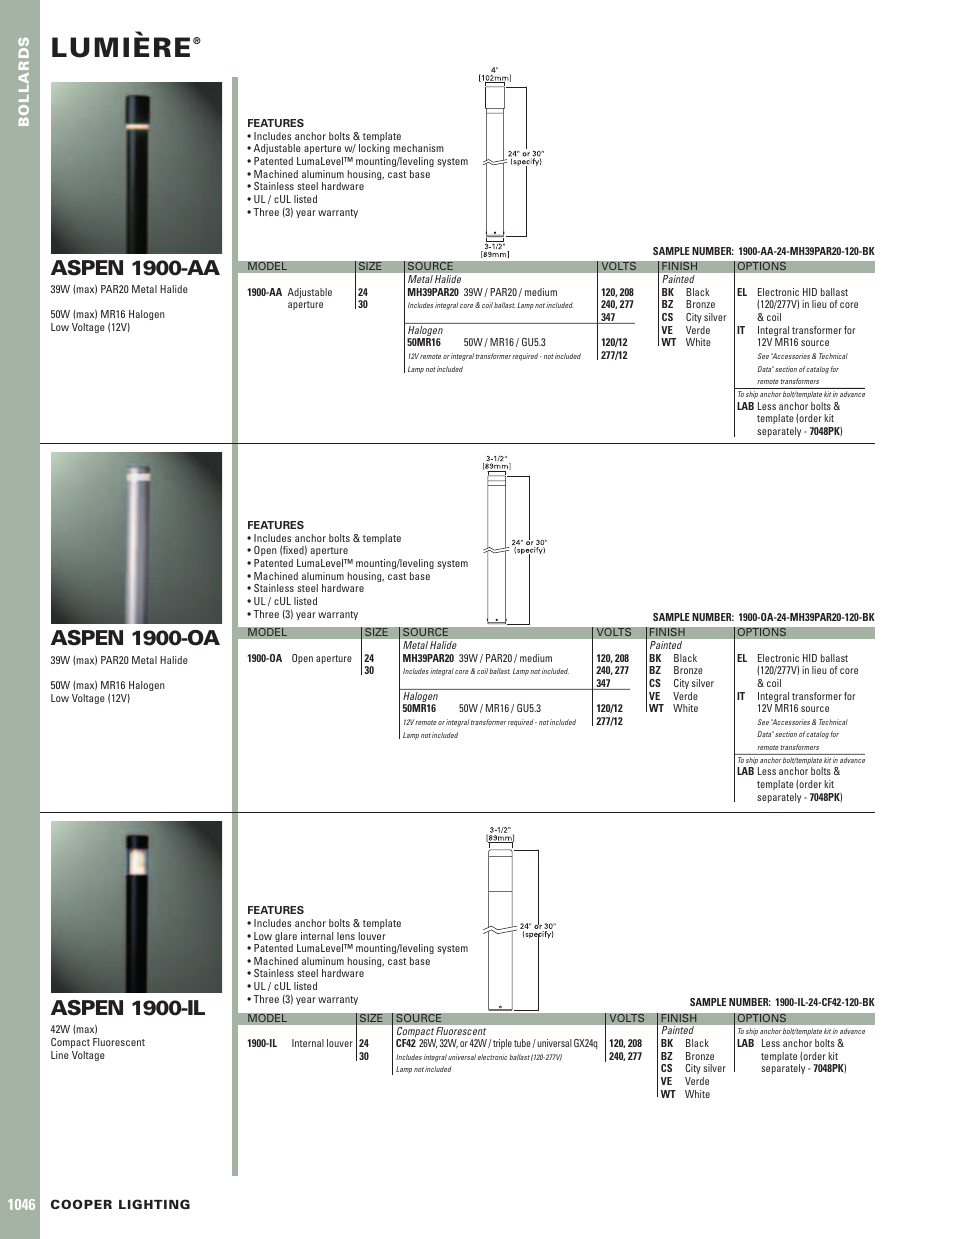 Cooper Lighting Lumiere Aspen 1900-IL User Manual | 1 page | Also for Lumiere Aspen 1900-OA Lumiere Aspen 1900-AA  sc 1 st  manualsdir.com & Cooper Lighting Lumiere Aspen 1900-IL User Manual | 1 page | Also ...